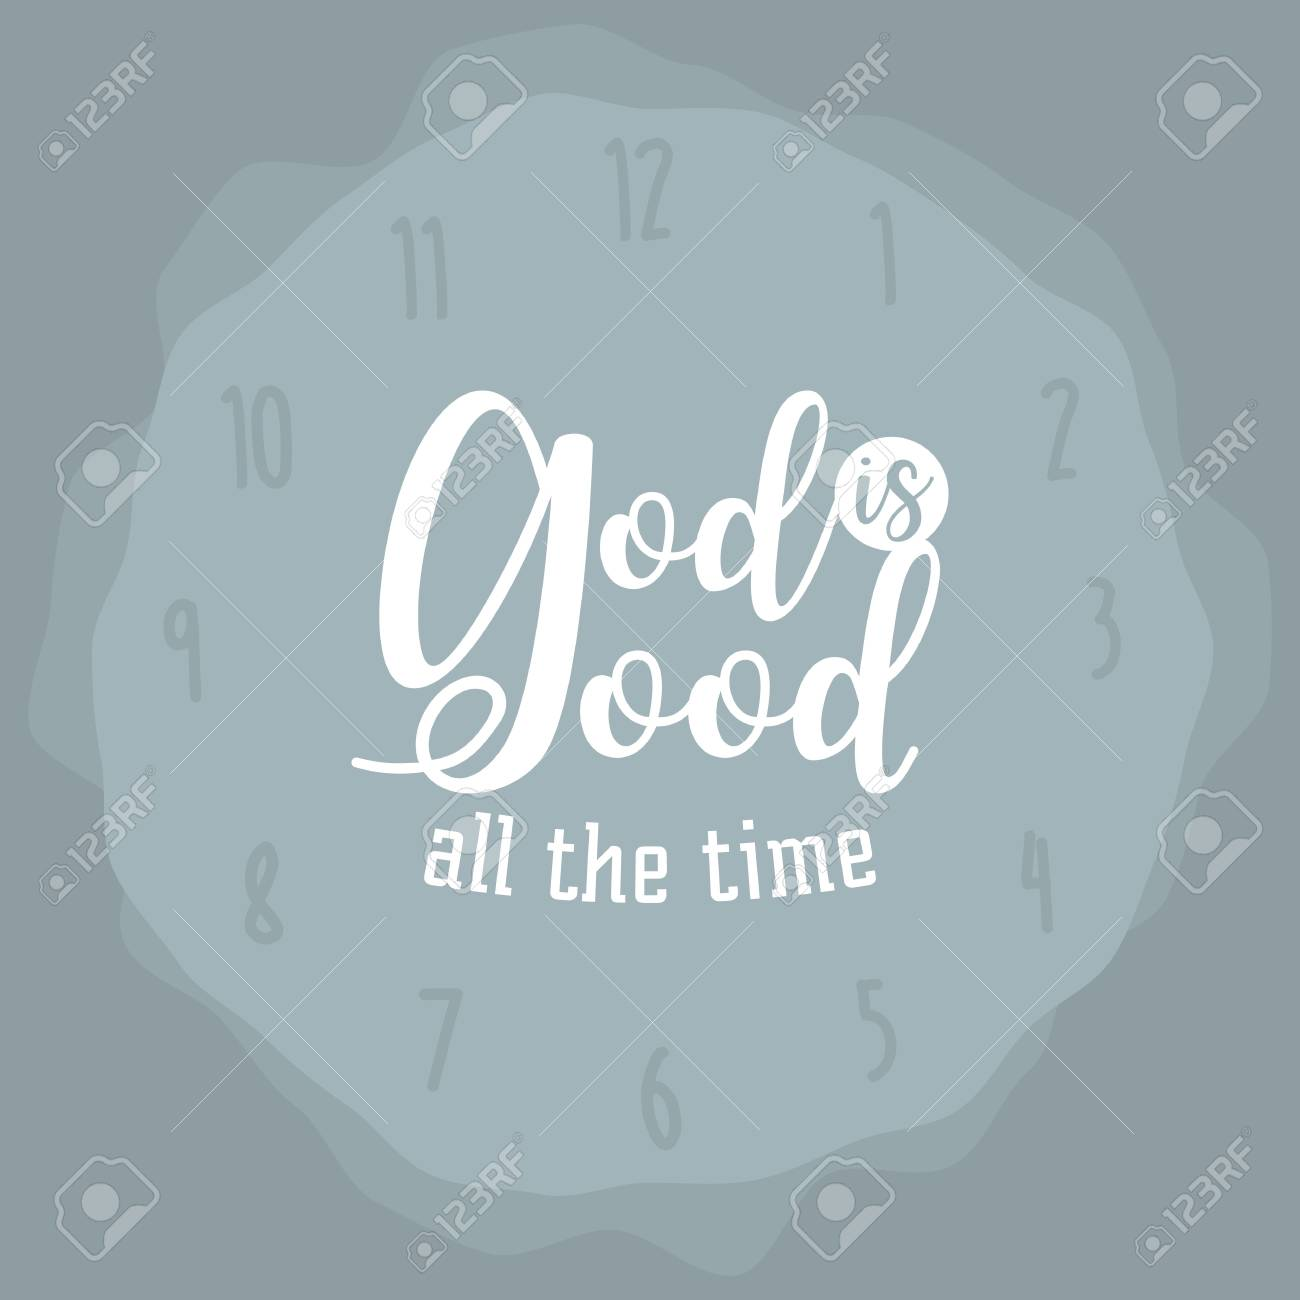 God Is Good All The Time Hand Lettering Typography Design For